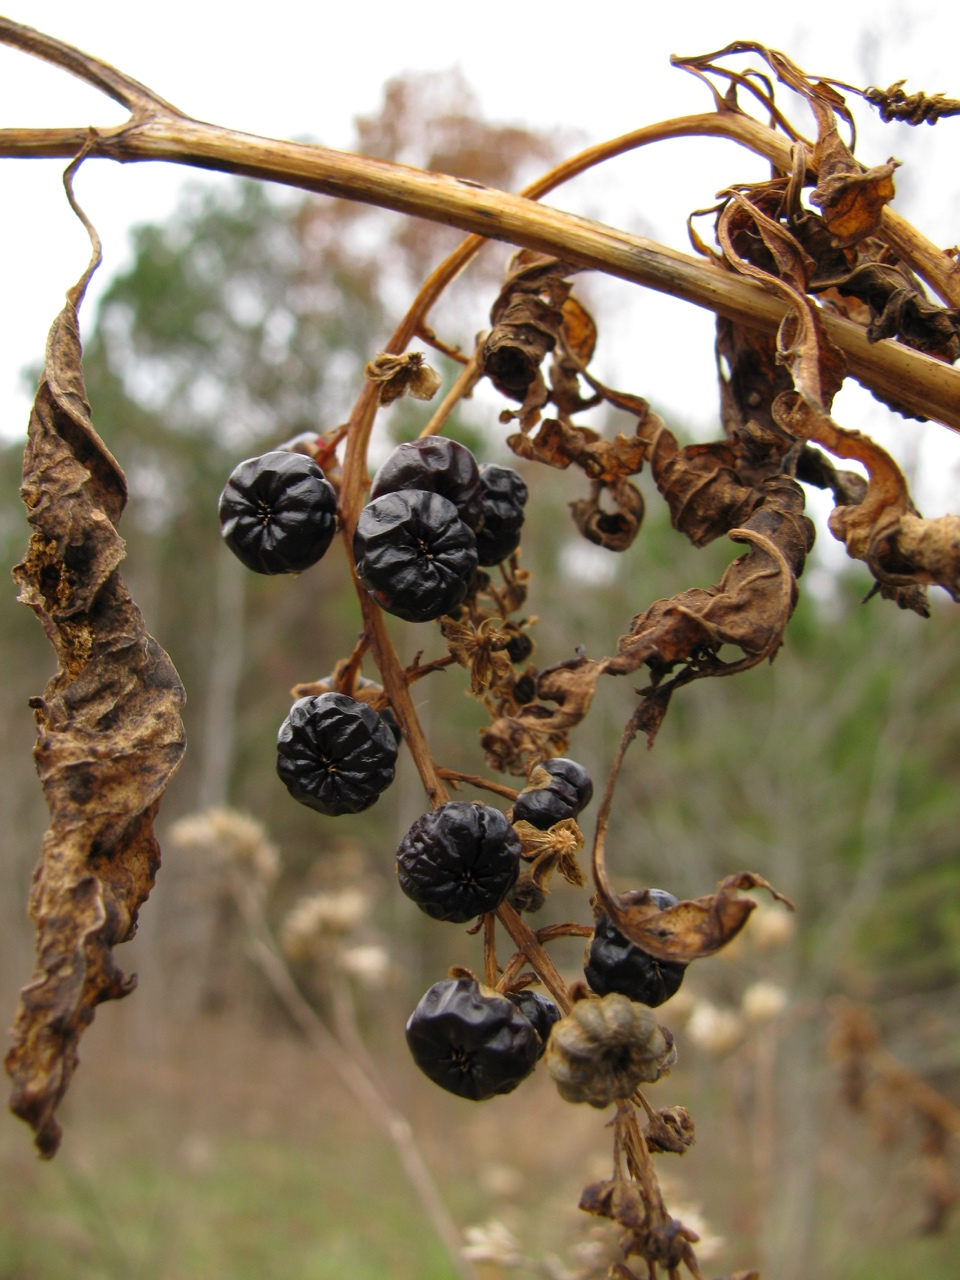 The Scientific Name is Phytolacca americana. You will likely hear them called Pokeweed, American Pokeweed, Great Pokeweed, Pokeberry, Red Ink Plant, Pigeonberry. This picture shows the Senesced plant with remaining berries in November of Phytolacca americana